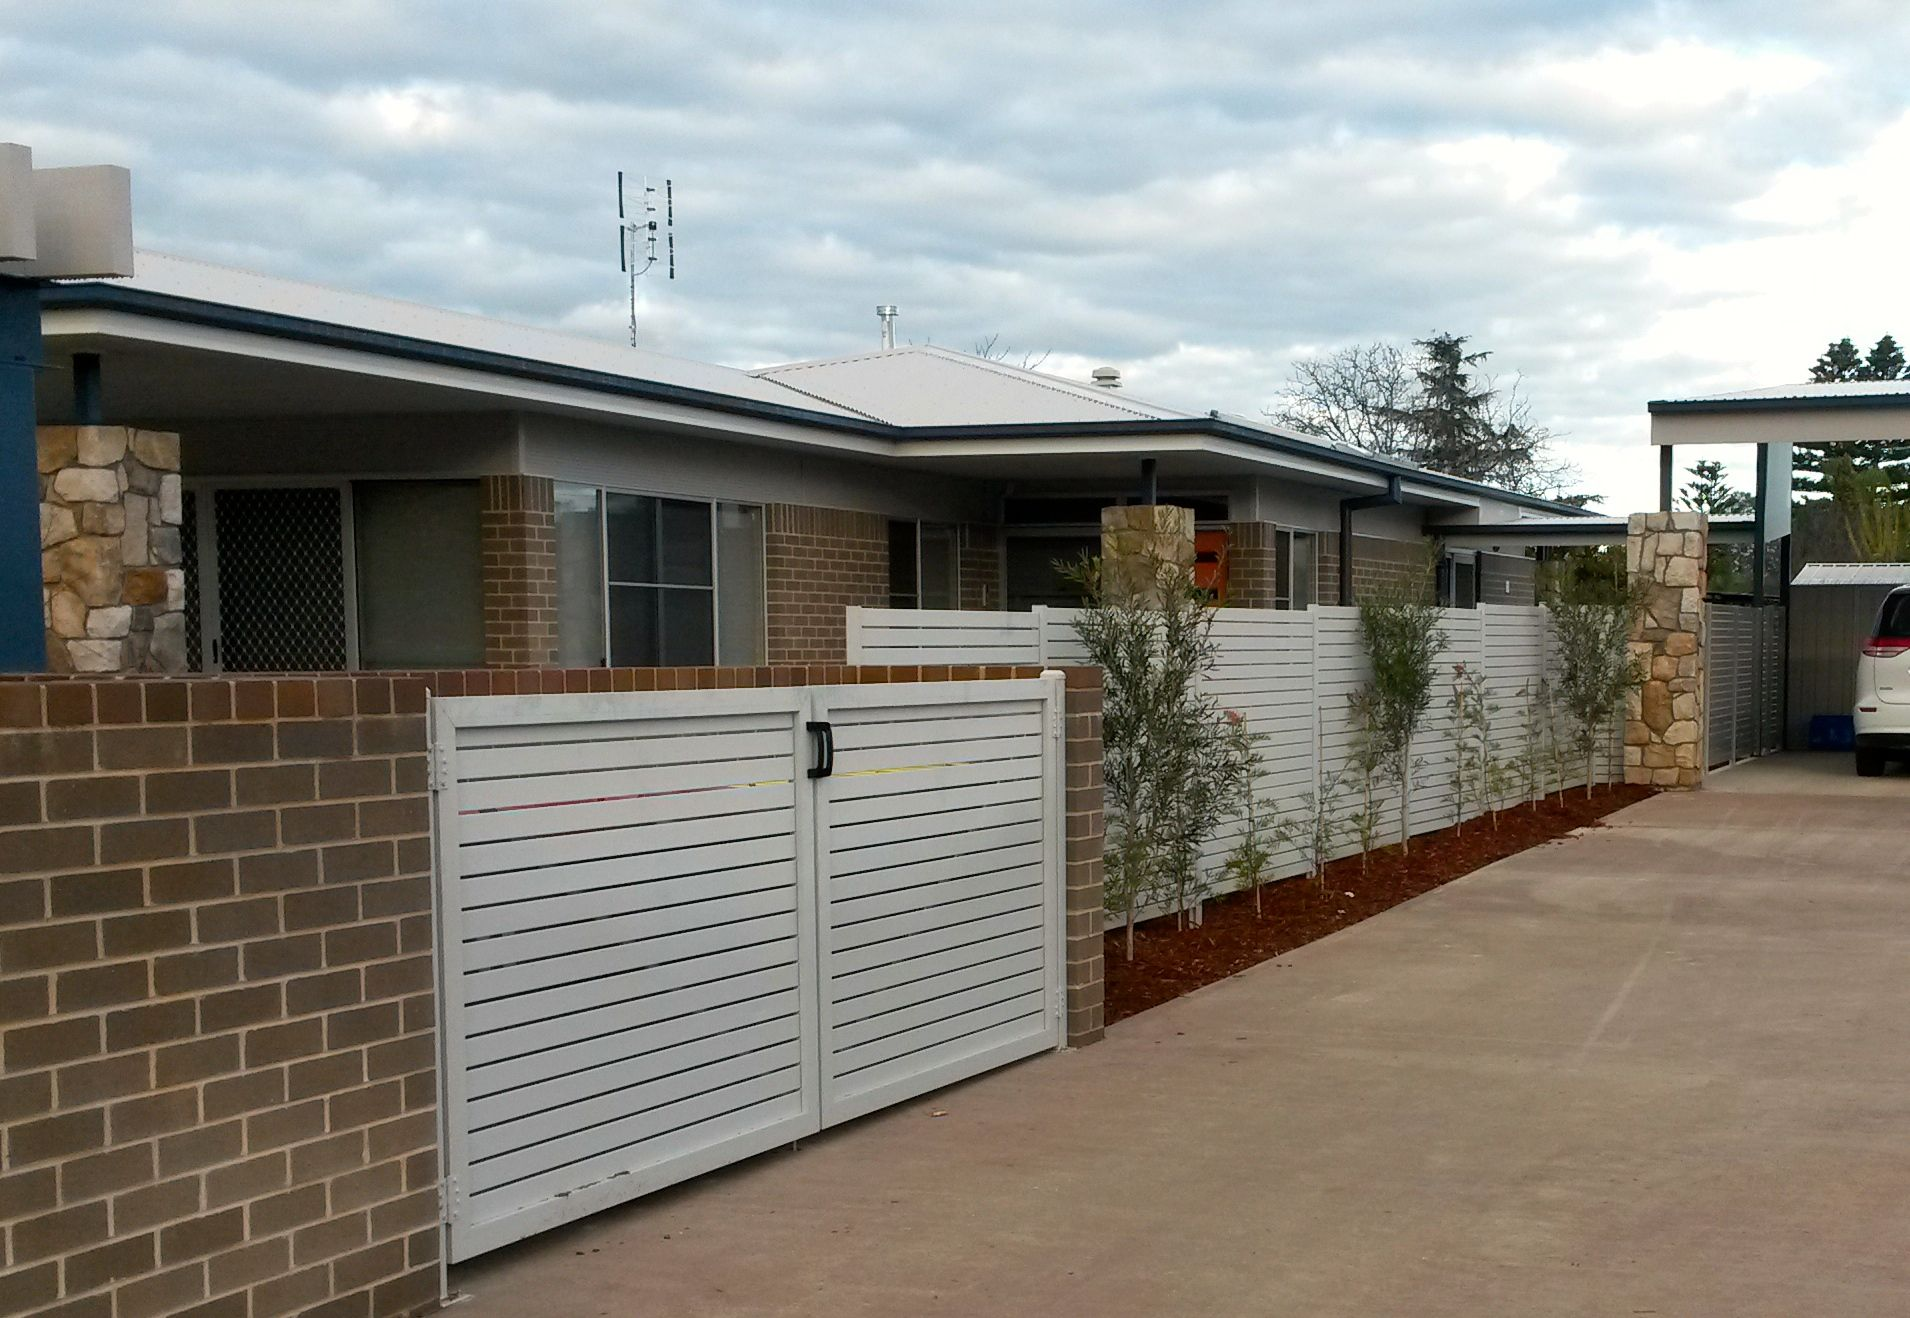 Horizontal Picket Fencing and Gates used for waster enclosure.jpg